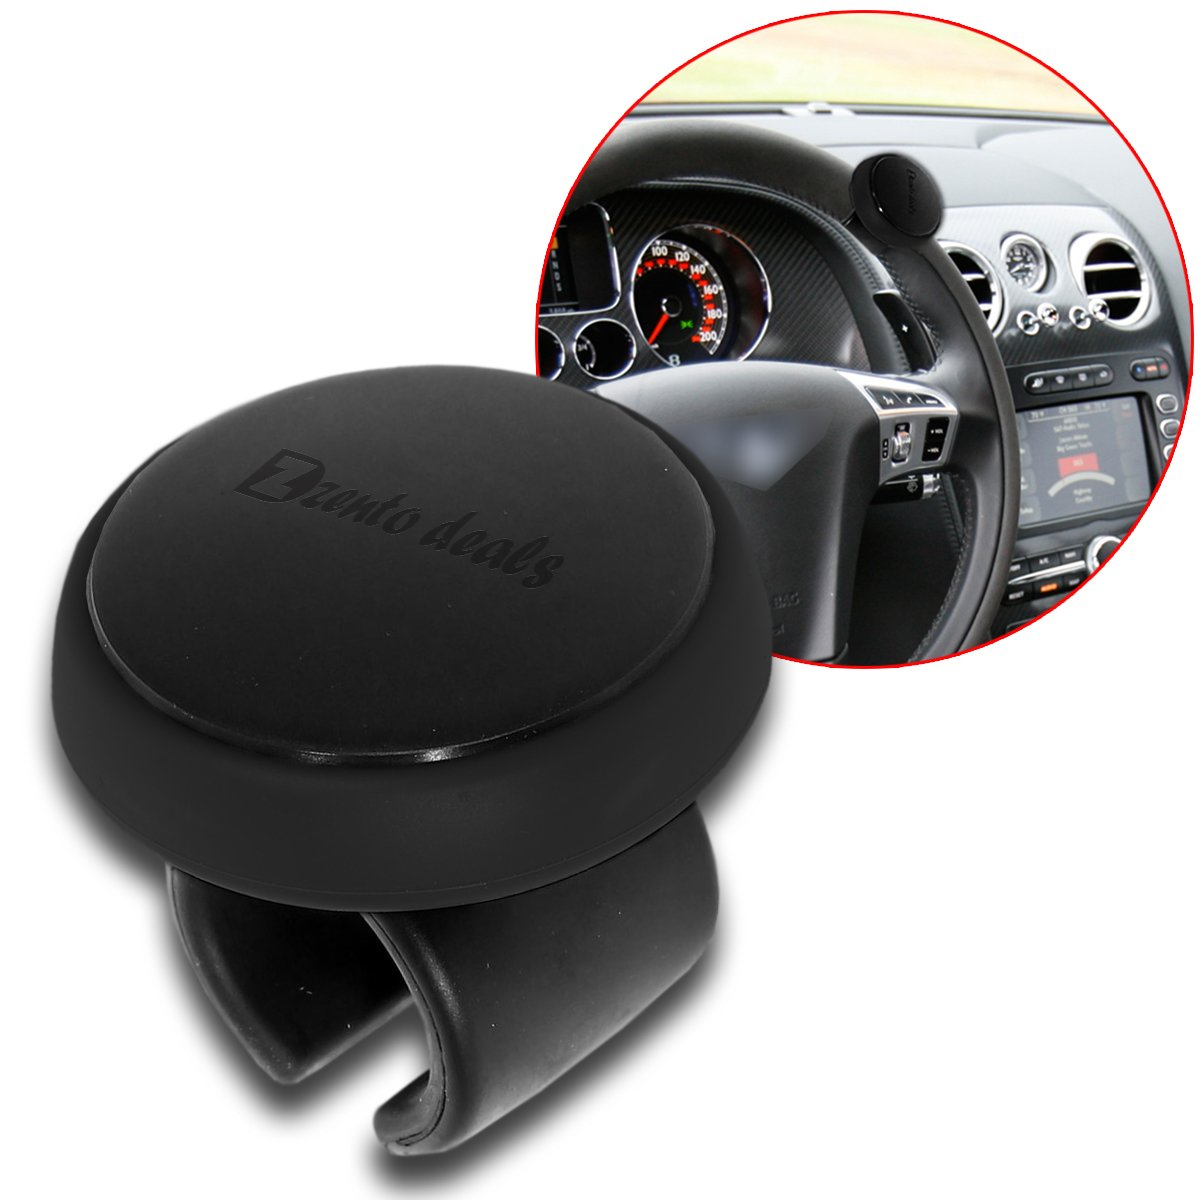 Zento Deals Premium Quality ABS and Silicone Material for Comfortable Grip Safe Driving Disabled Steering Wheel Spinner Knob